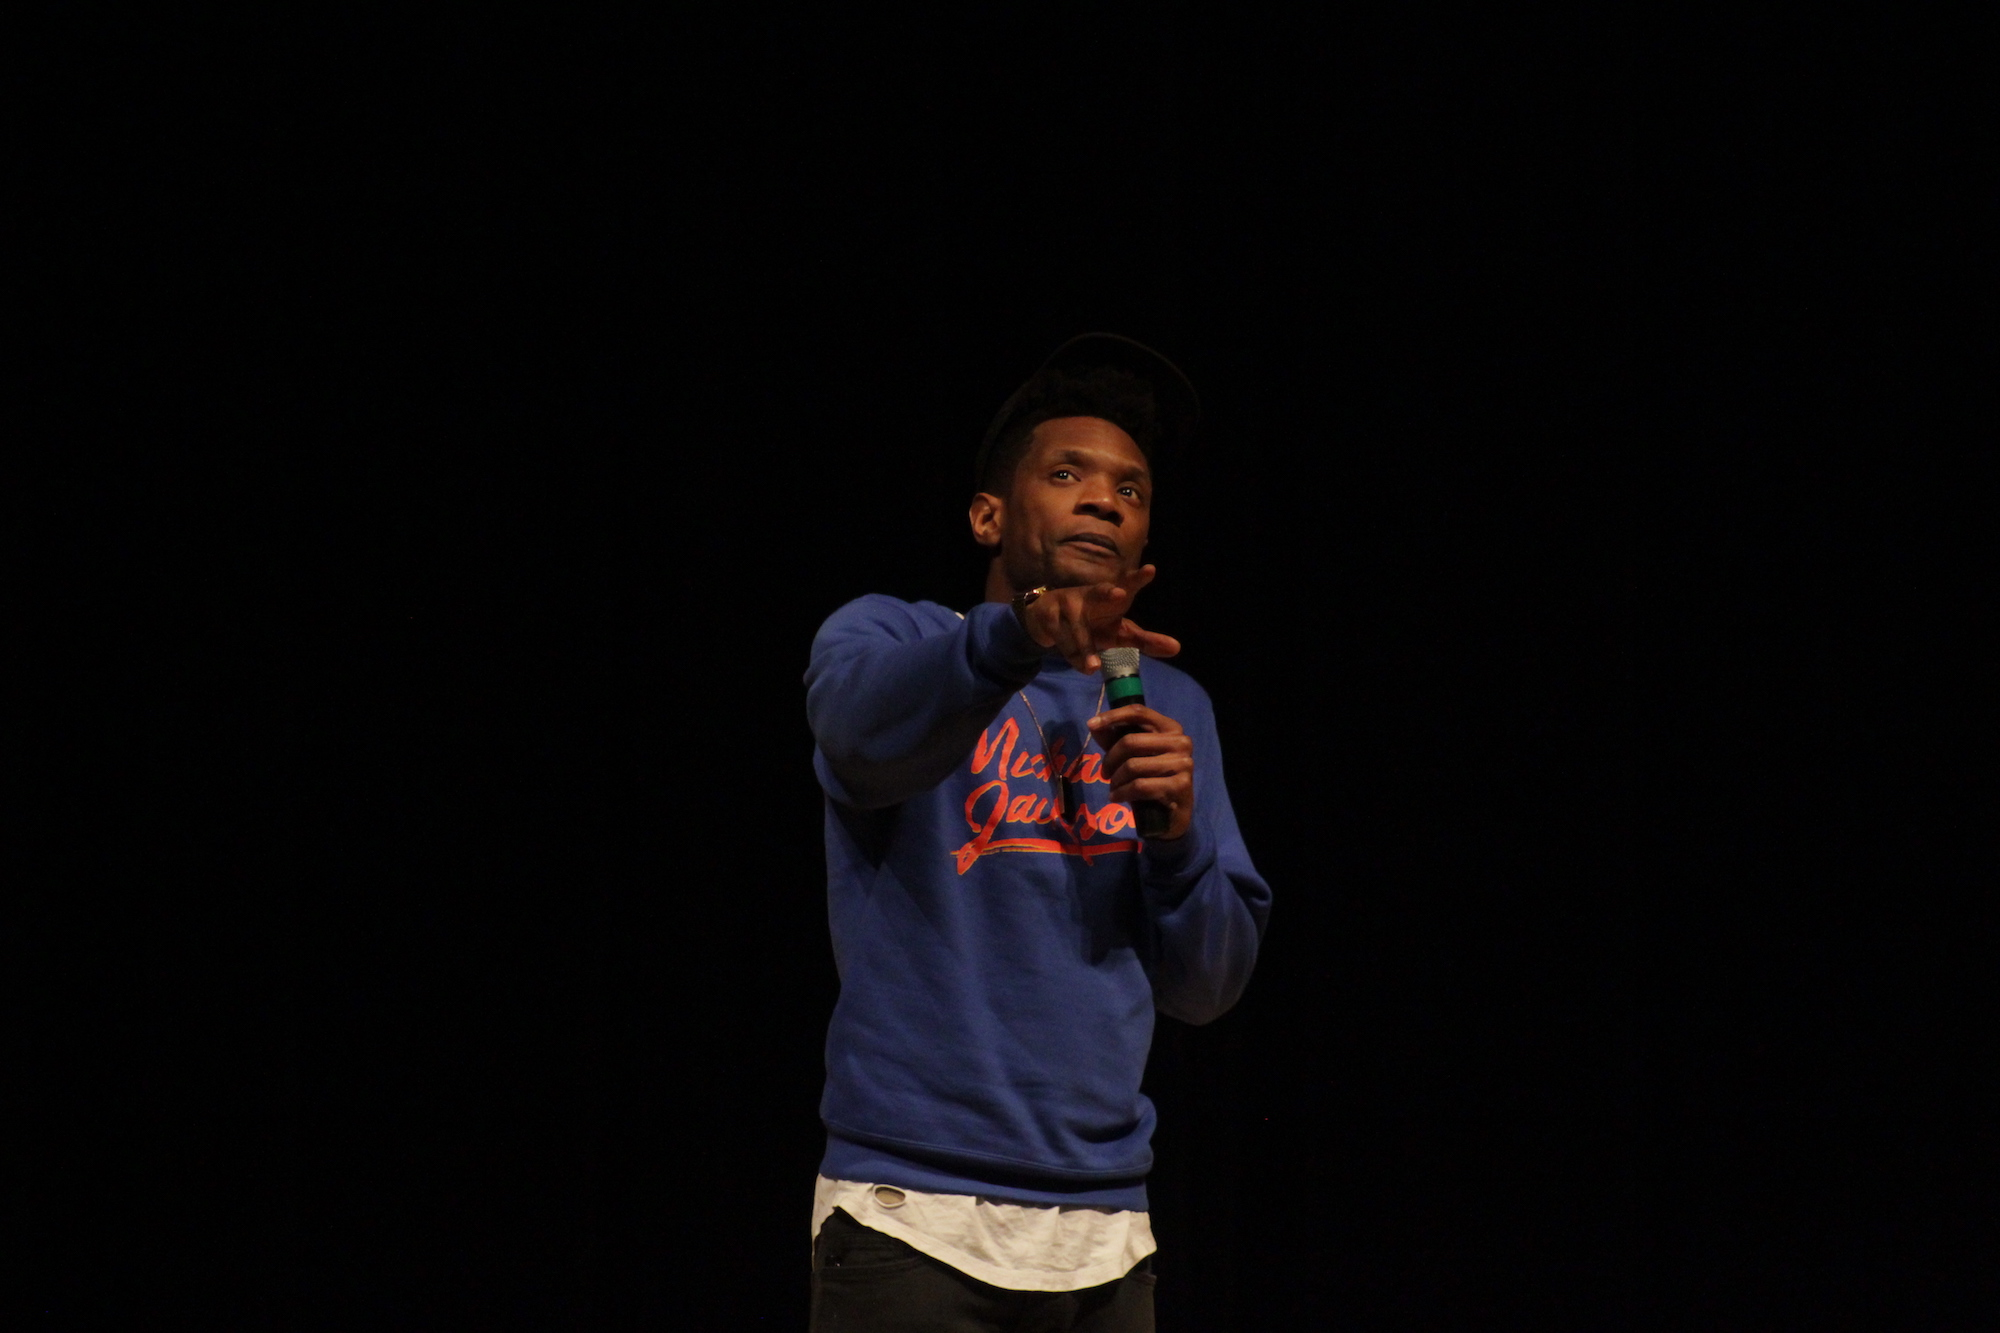 """Comedian Seaton Smith performed in the Student Union theater Wednesday, March 1 as a part of SUBOG's comedy series. He has appeared on well-known comedy shows like """"Late Night with Sethy Meyers,"""" """"Inside Amy Schumer"""" and """"The Nightly Show."""" (Jordan Richardson/The Daily Campus)"""